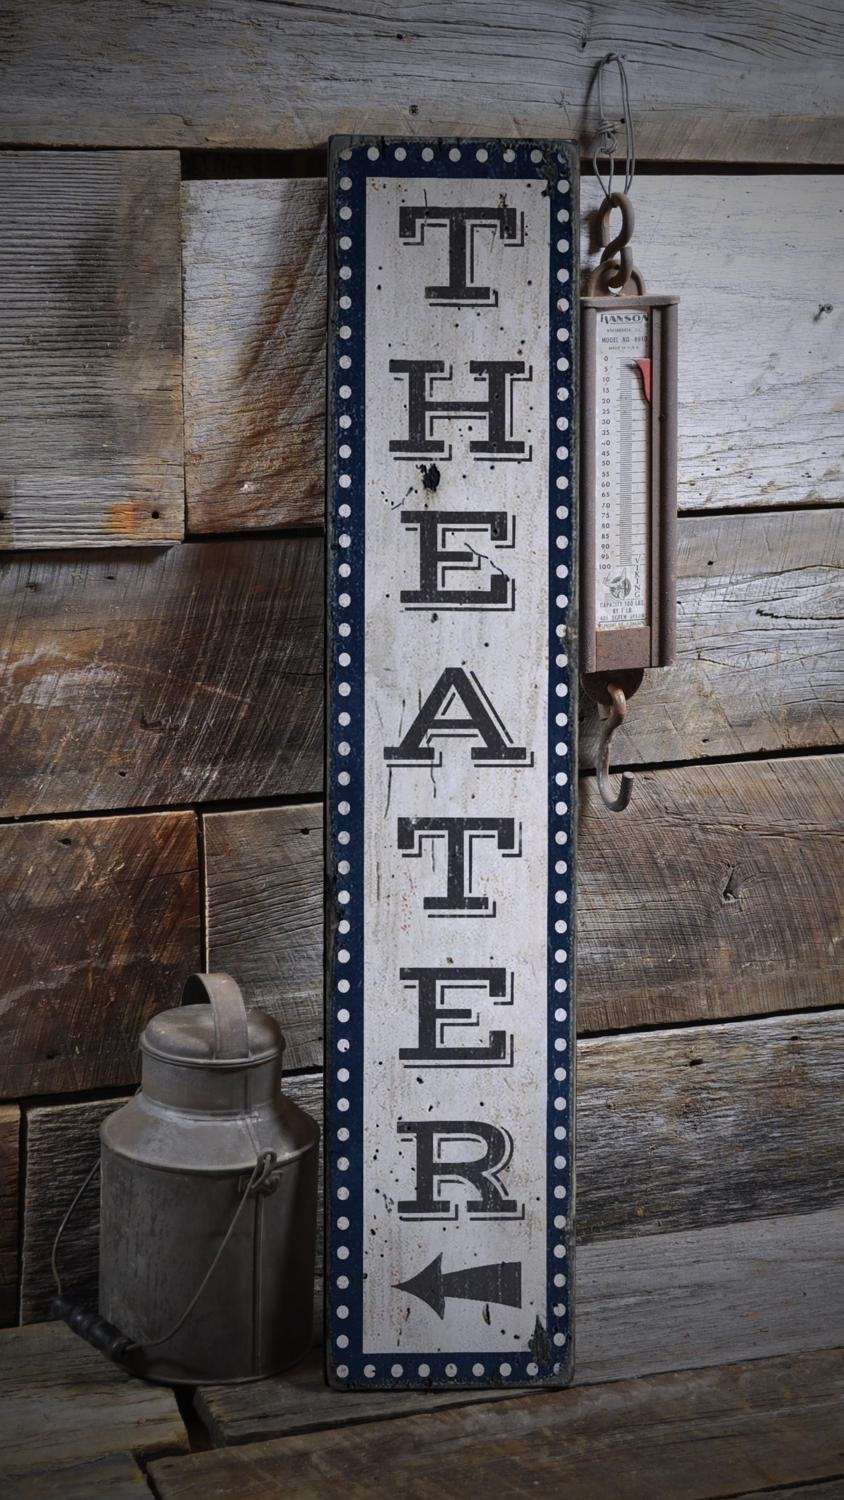 Movie Room Sign, Home Theater Sign, Vertical Theater Sign Wood Theater Sign, Home Theater Decor - Rustic Hand Made Wooden Sign - 11.25 x 60 Inches